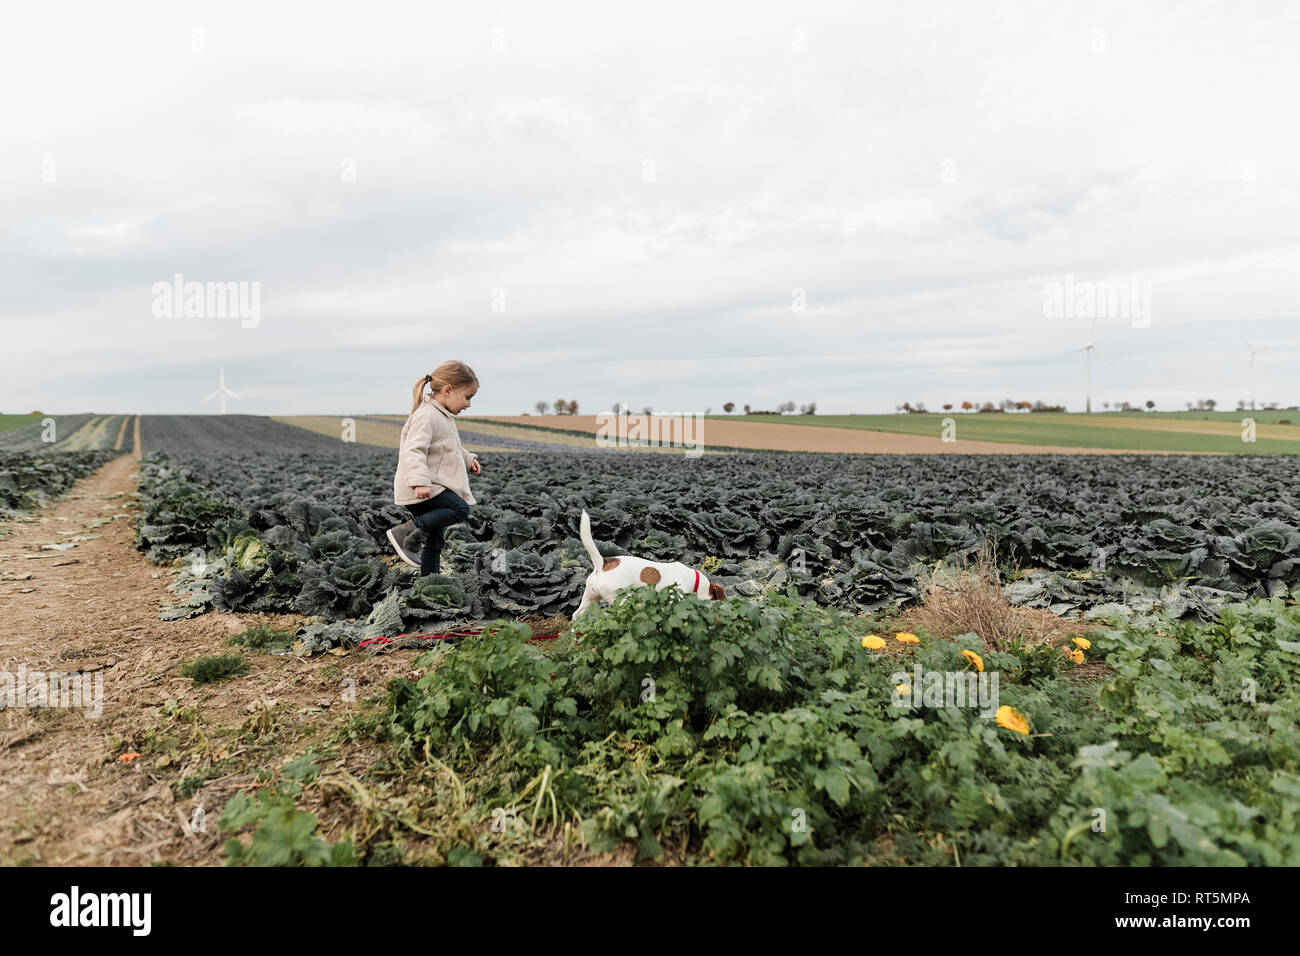 Girl playing with dog at a cabbage field - Stock Image